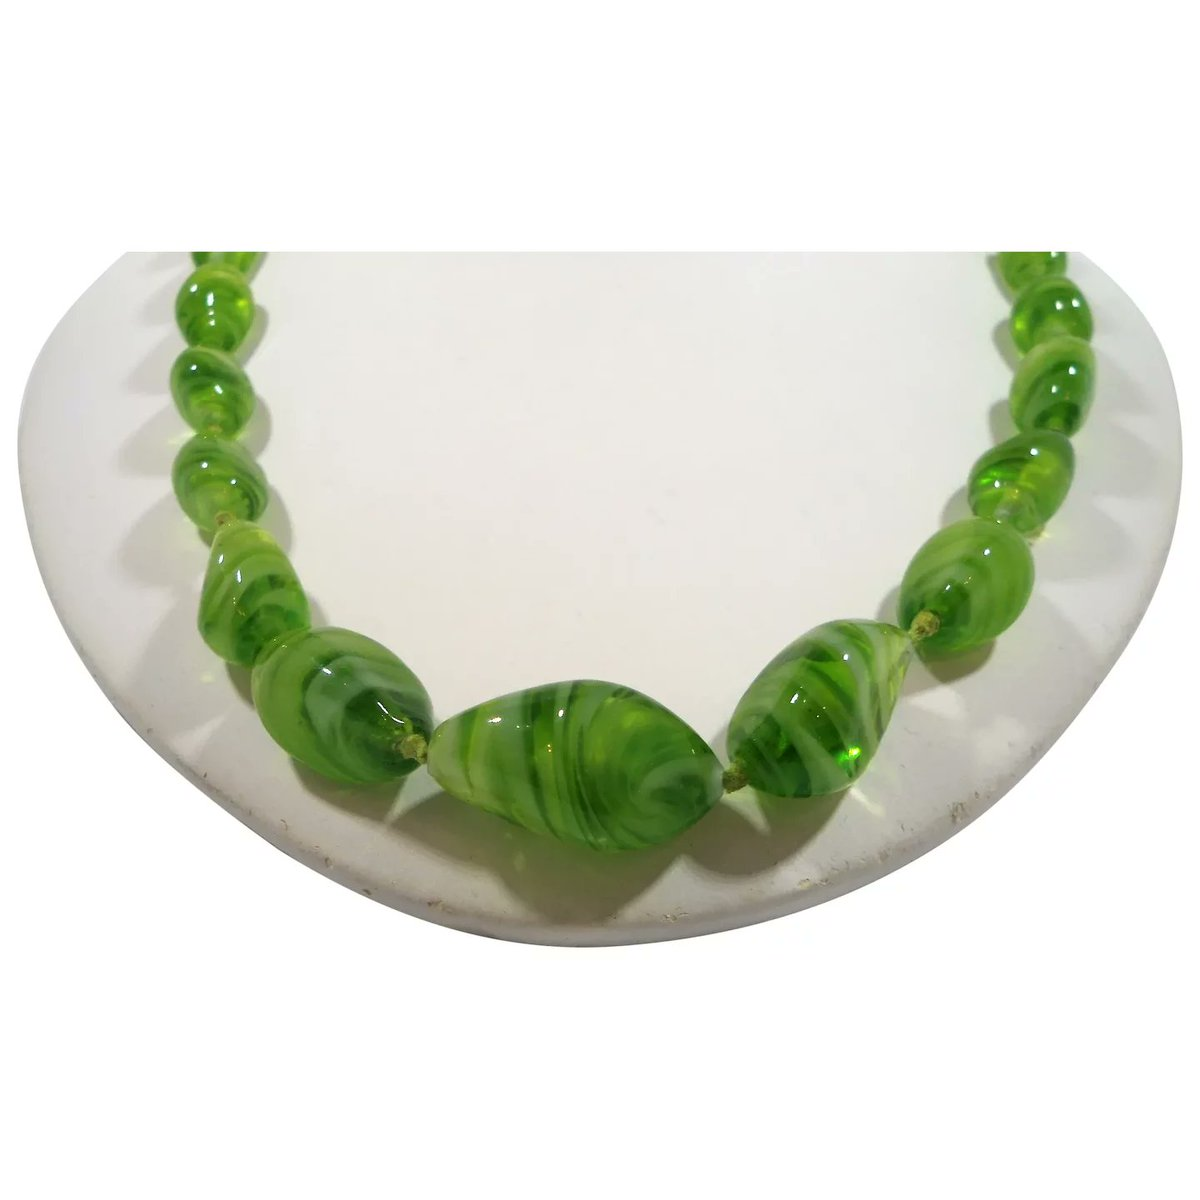 Swirled Lime Apple Green Art Glass Beaded Necklace #rubylane #vintage #jewelry #glass #beads #necklace #giftideas #treatmyself #treatyourself #fashionista #givevintage